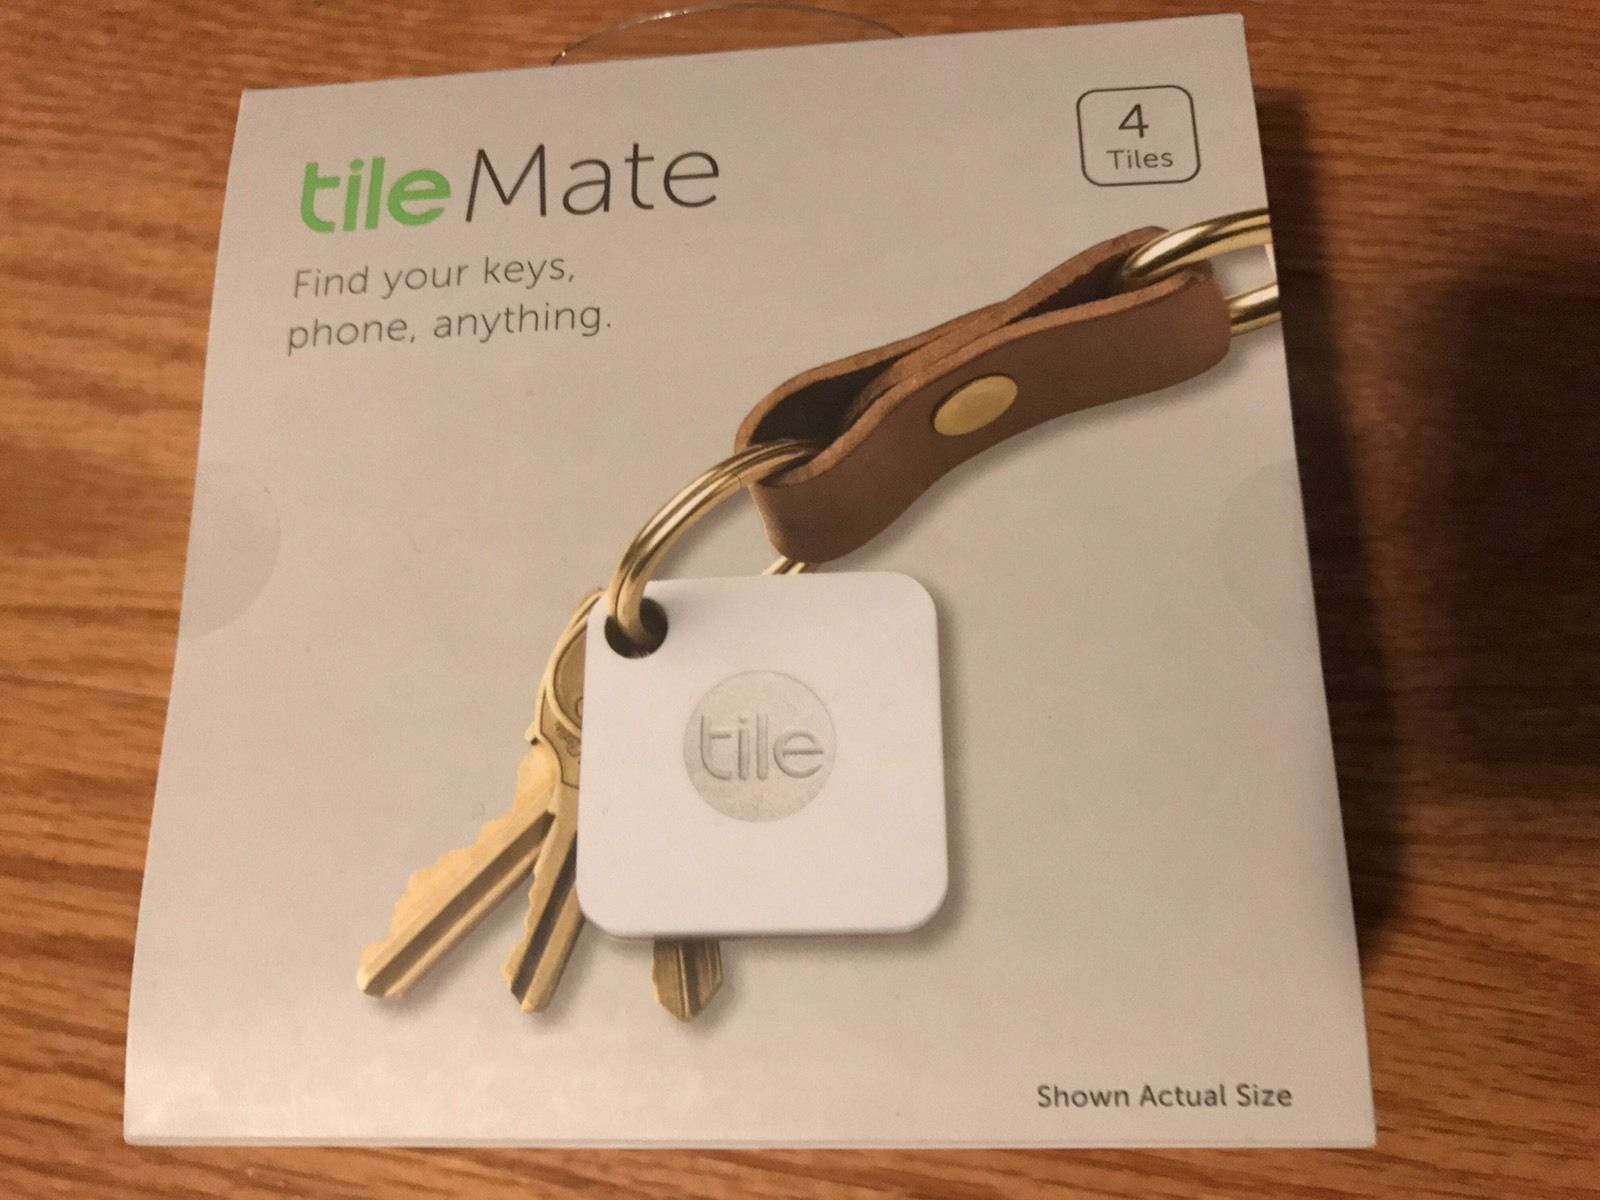 new tile mate bluetooth tracker device gps locator 4 pack finder key phone